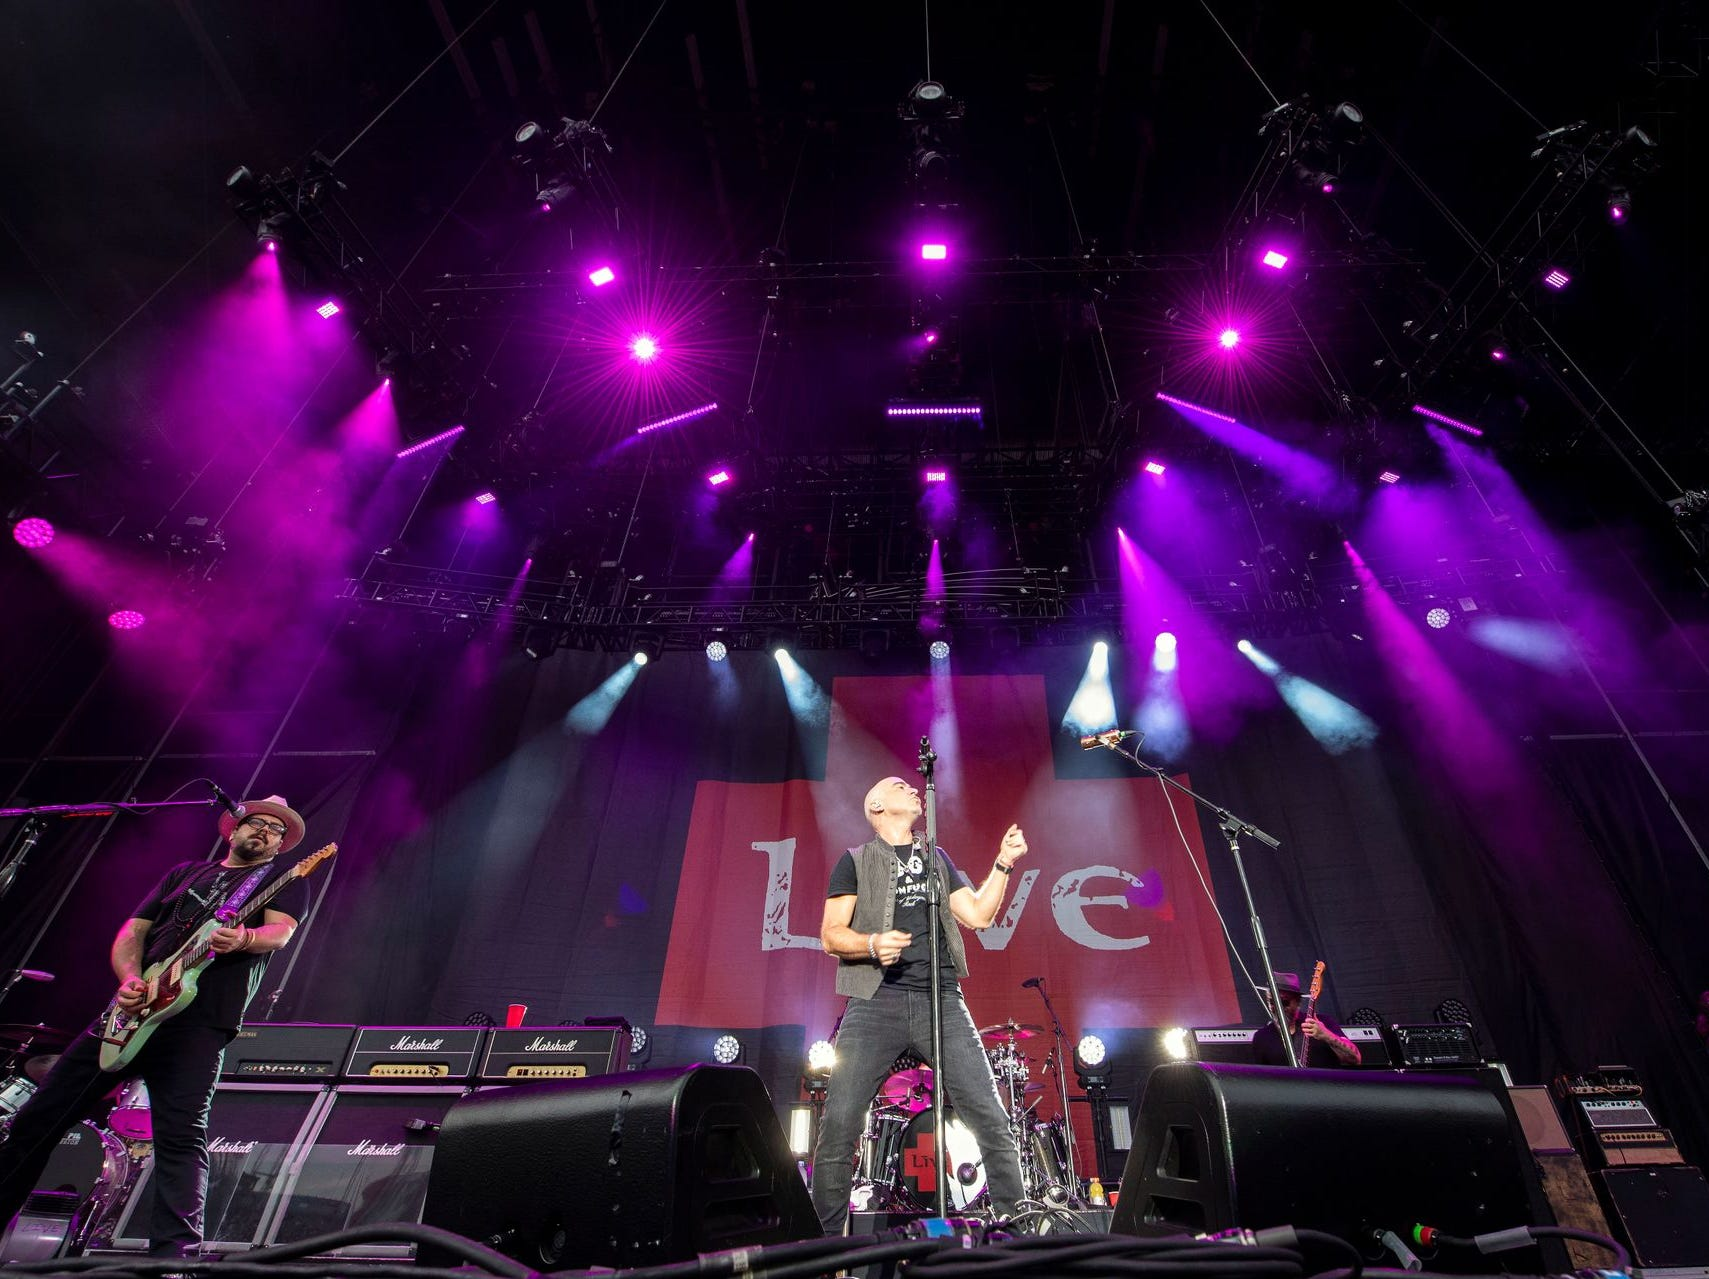 The band, with its original foursome, is back in touring around the world. Here,  they are seen in Hershey in the summer of 2018. To see the band in concert playing their most popular song, see their 2008 show in Amsterdam:  https://bit.ly/2wE7G2a.